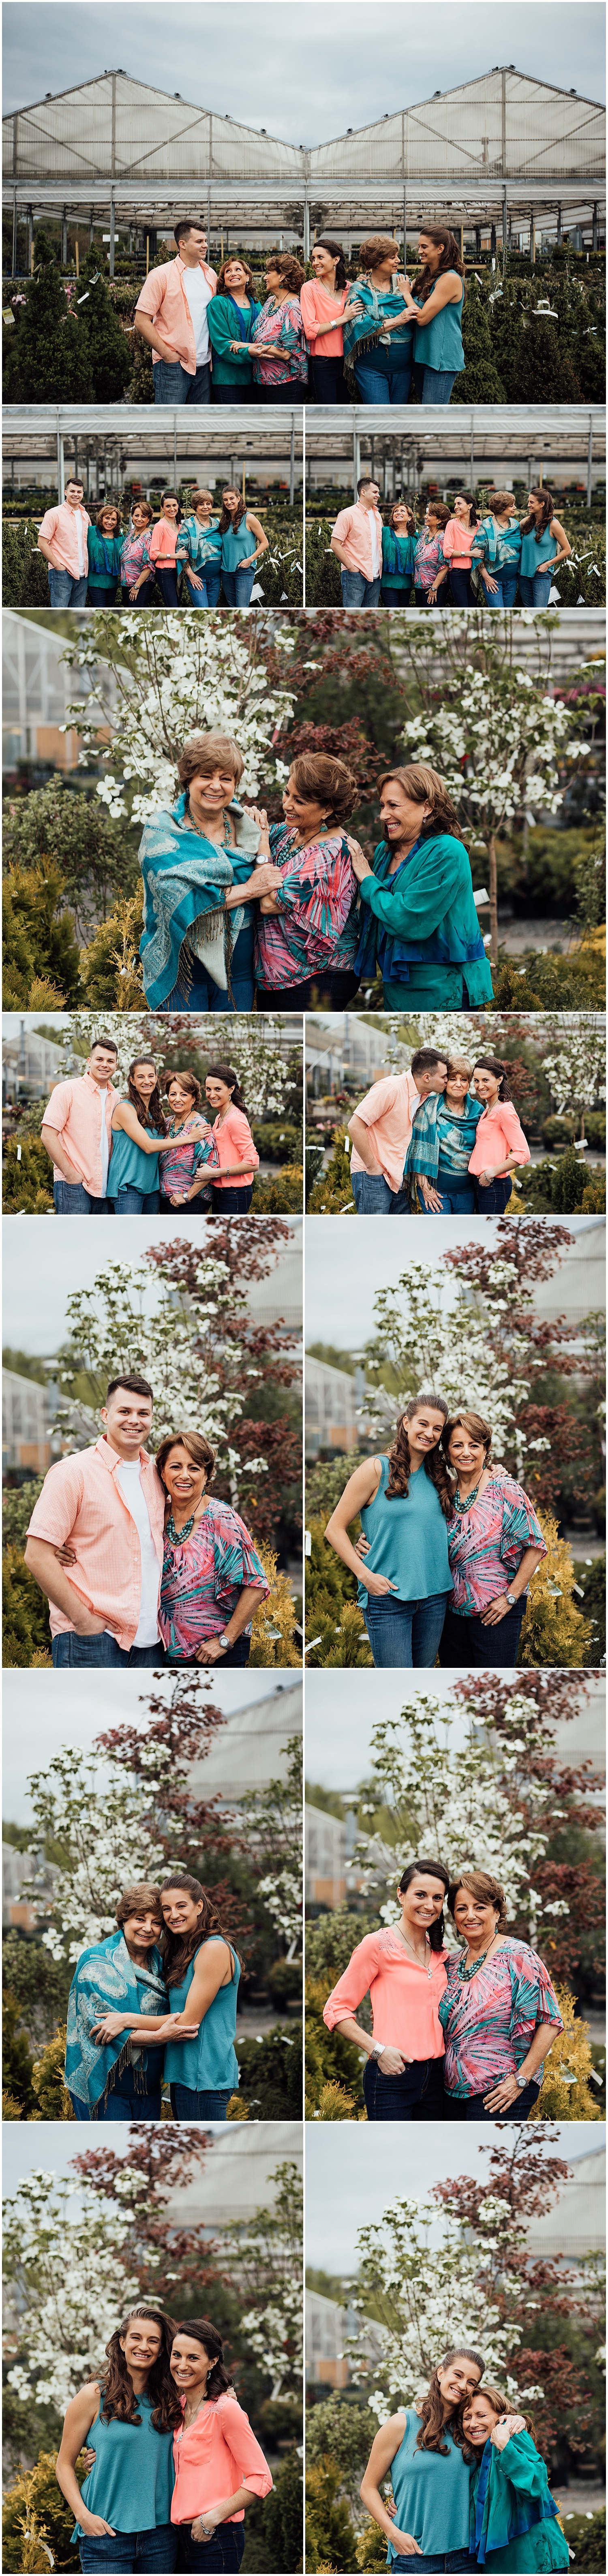 Fairfax Virginia extended family session in a greenhouse by Rachel K Photo